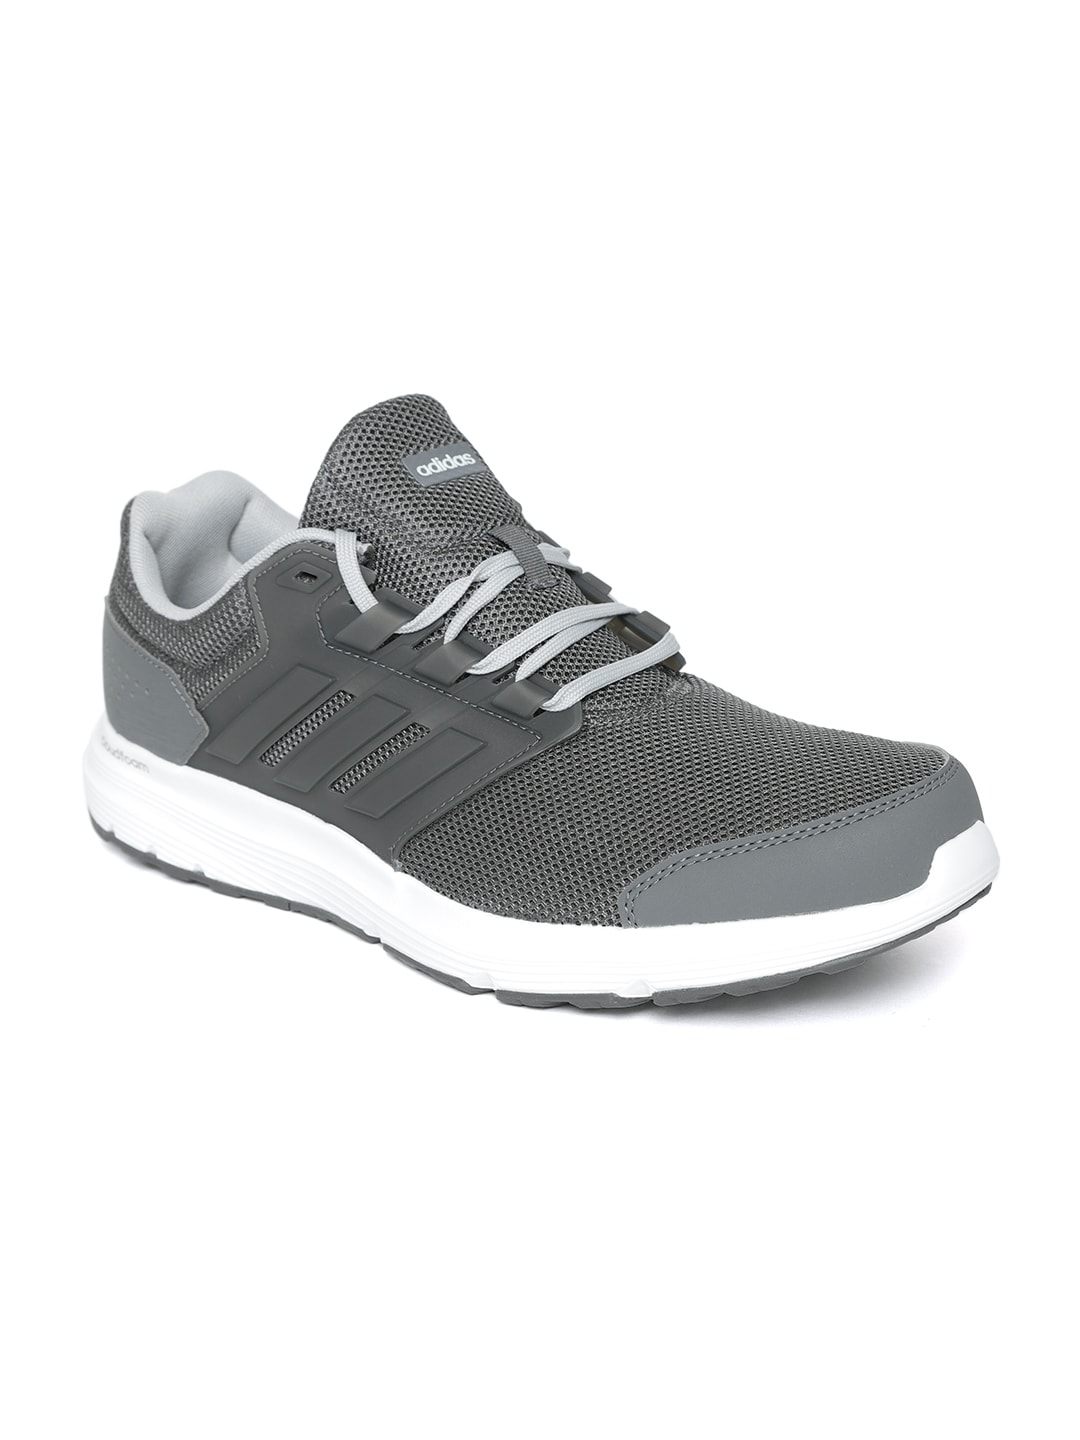 Men s Adidas Sports Shoes - Buy Adidas Sports Shoes for Men Online in India d46f2cb3642